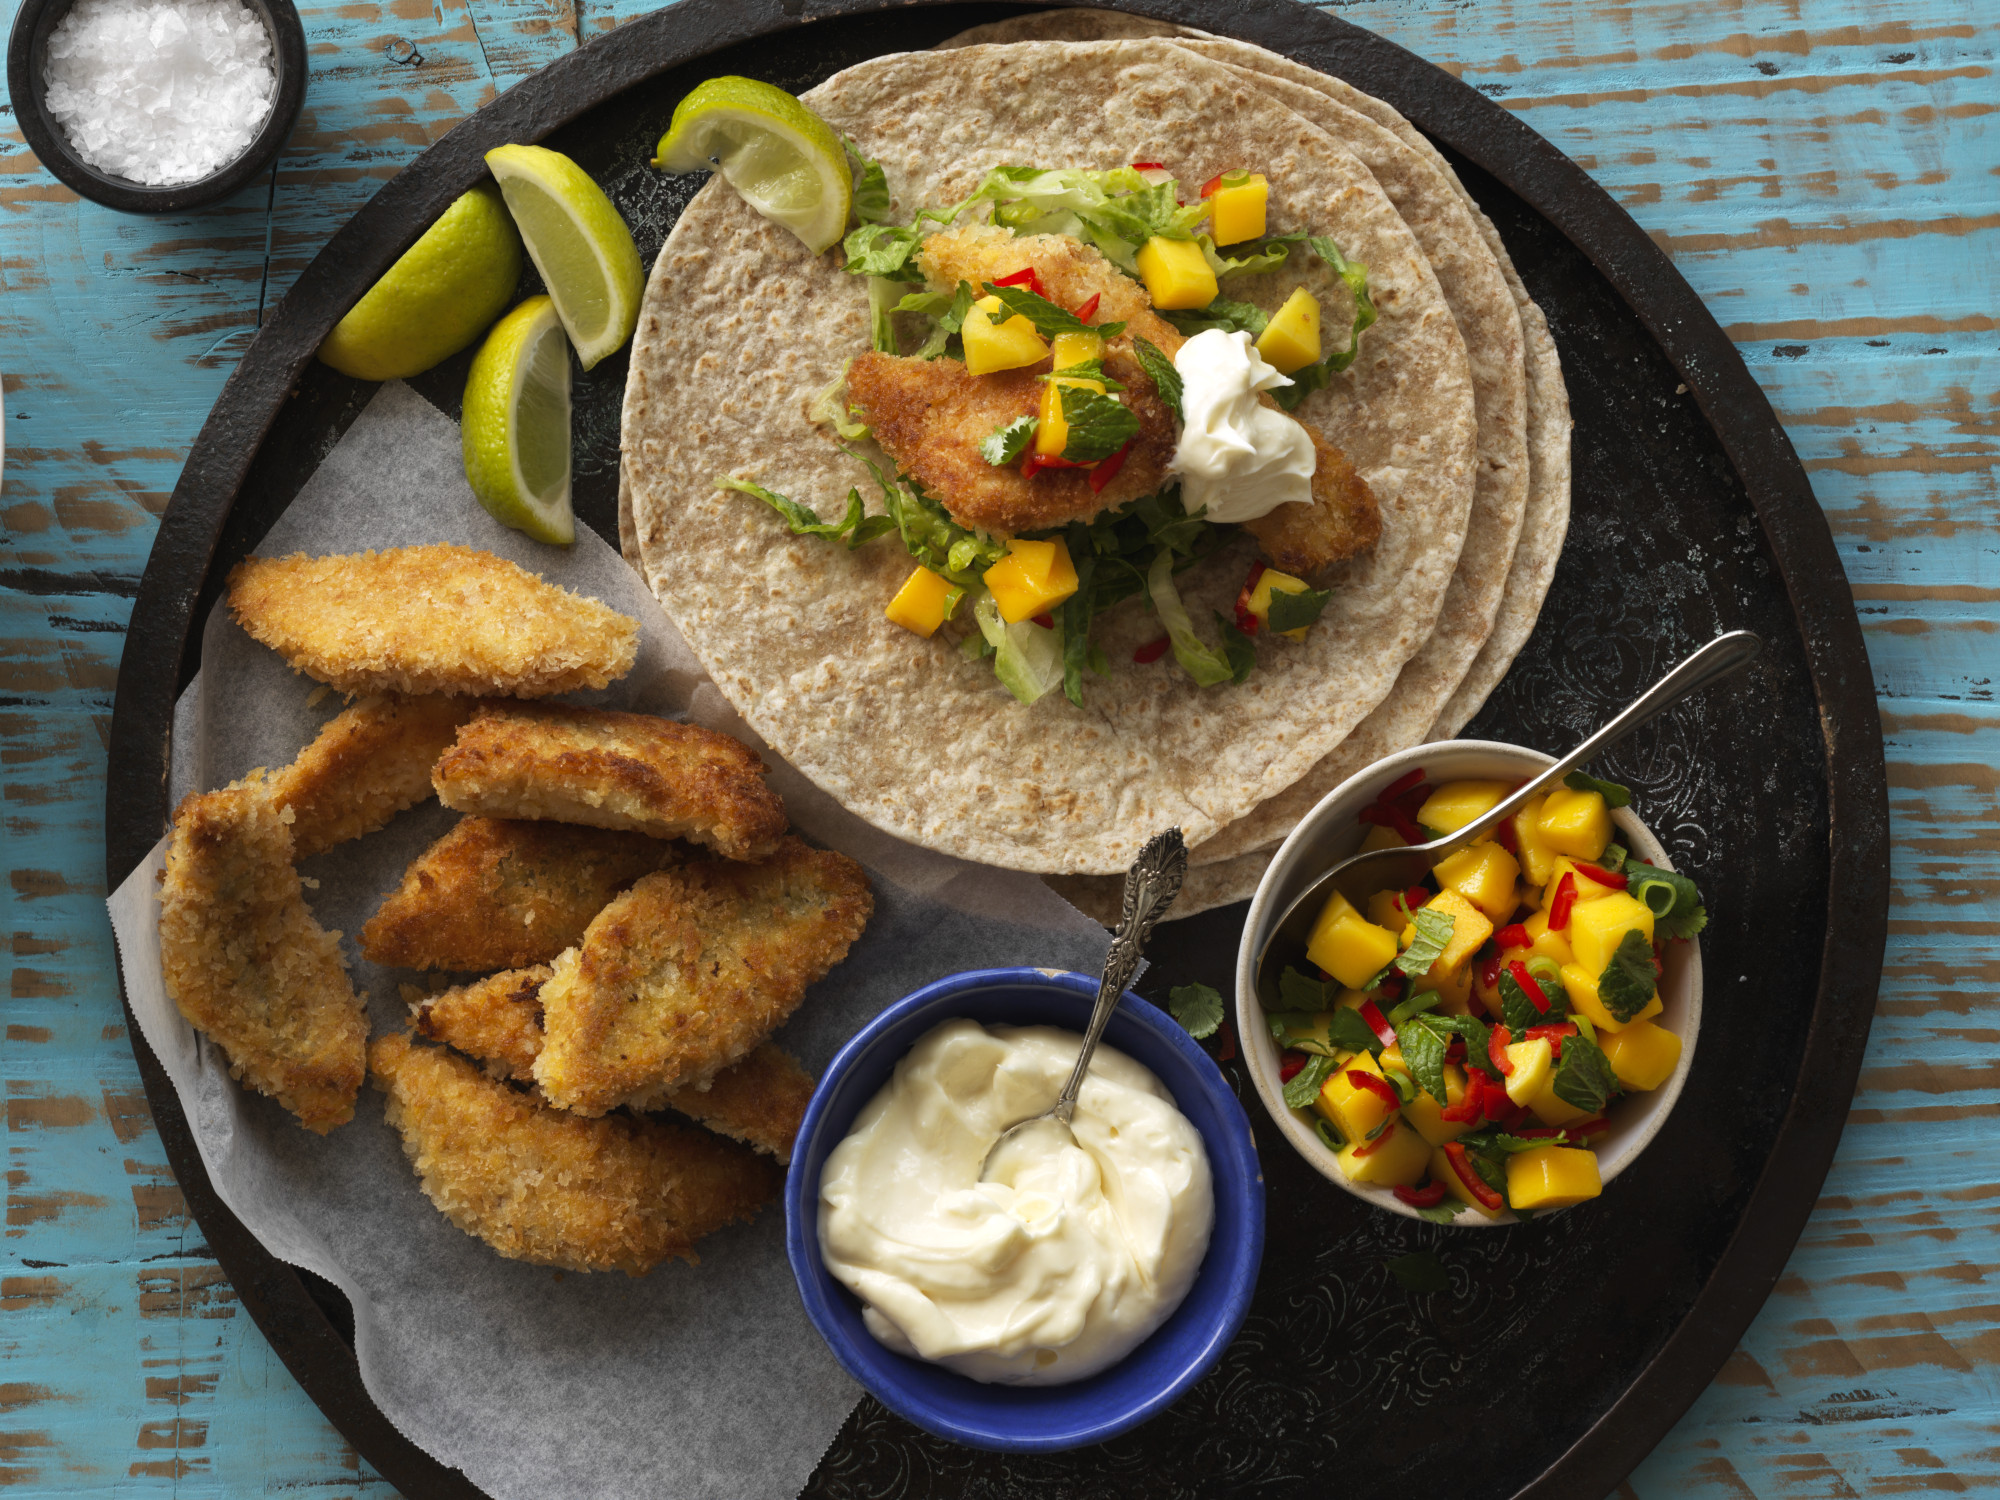 Crispy Fish Tacos with Mango Salsa